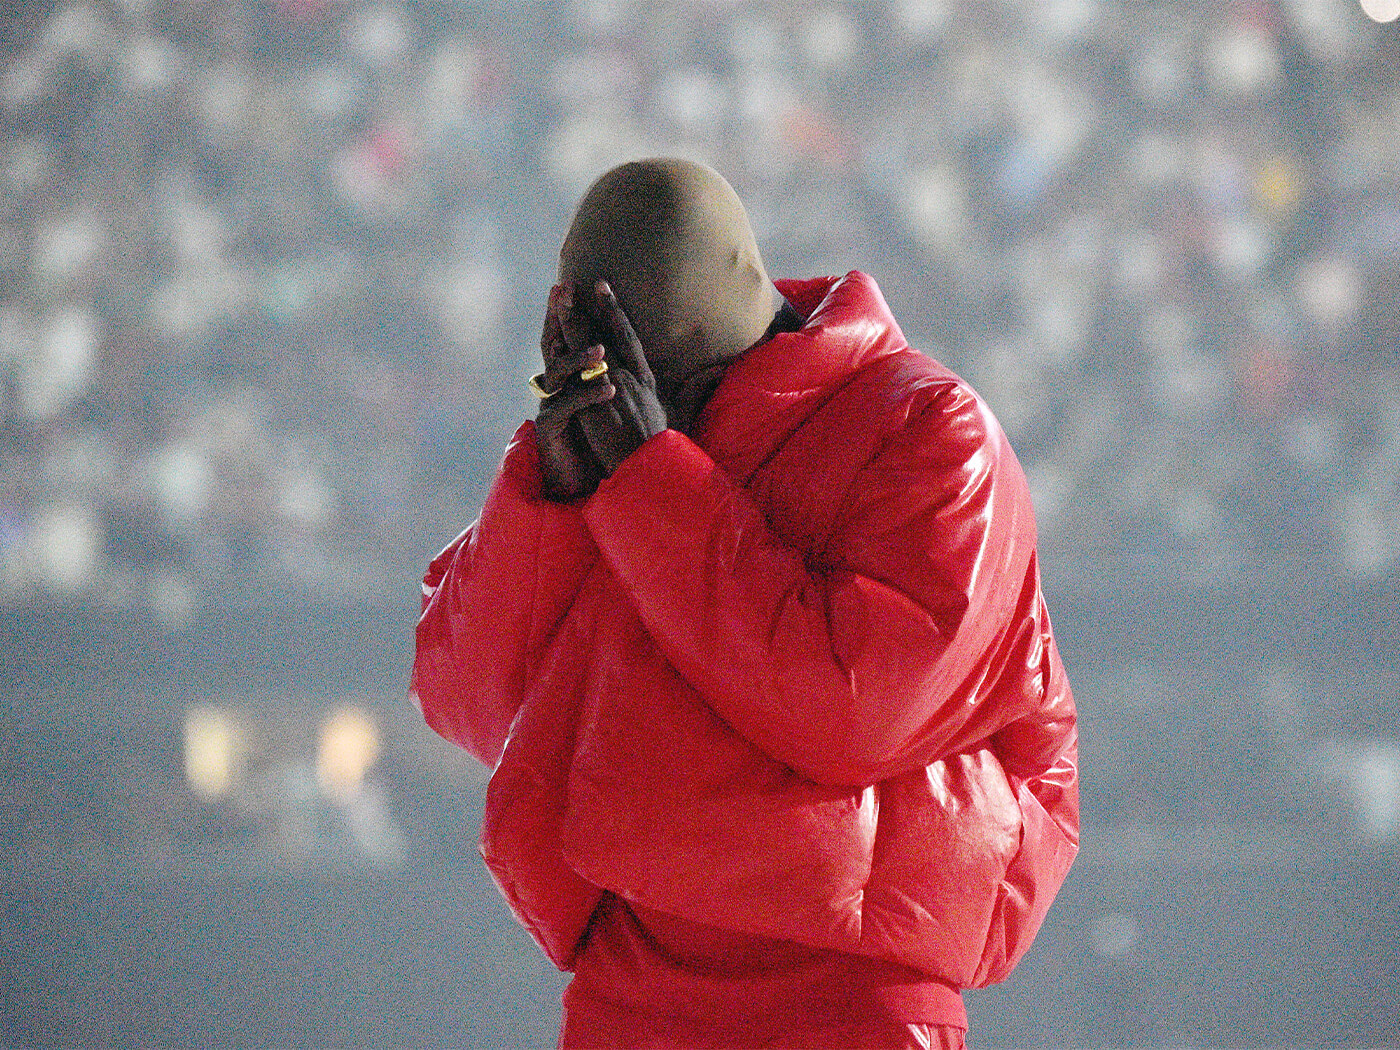 Where's Donda: the Internet reacts to Kanye West's missing album